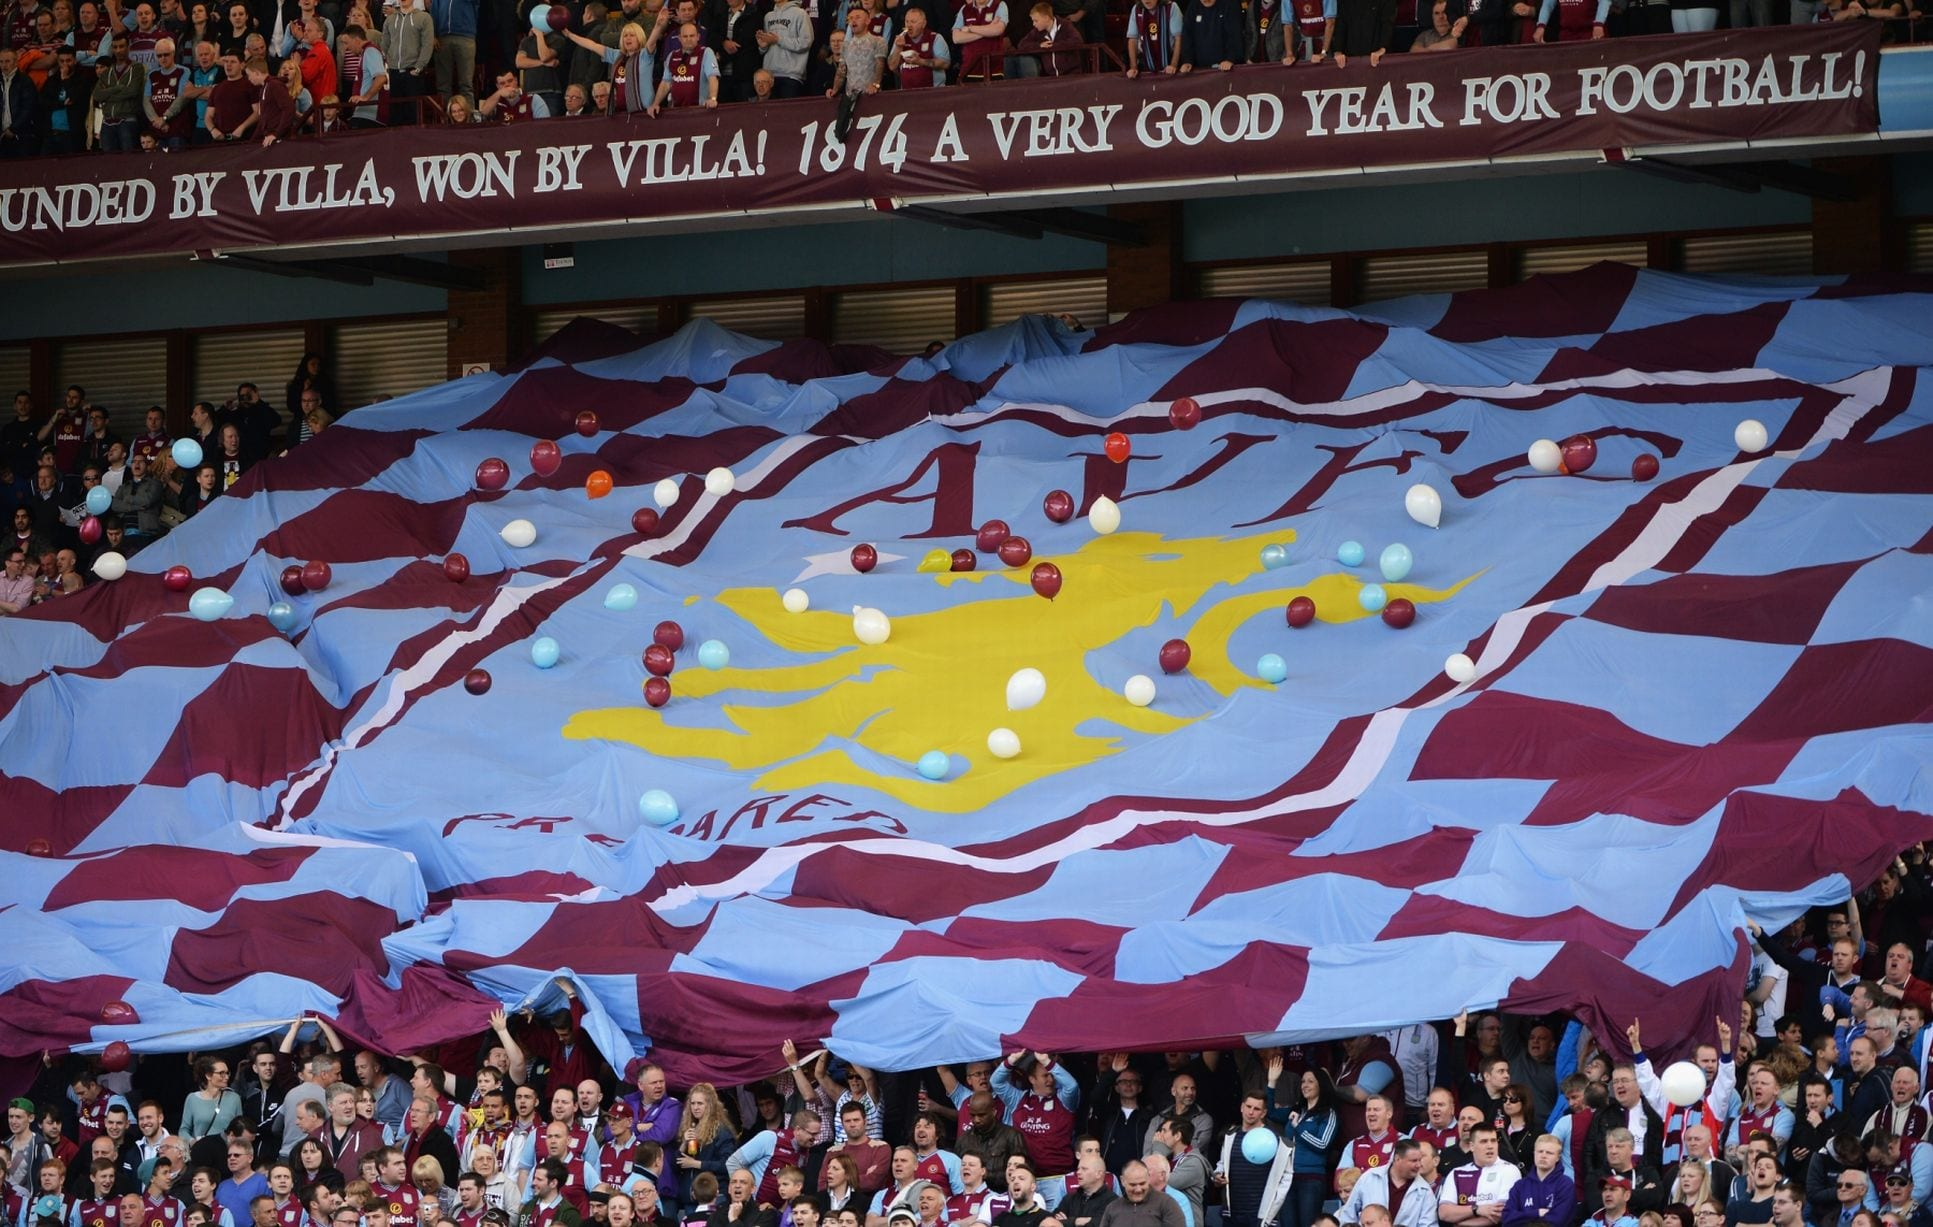 Aston Villa Makes Safety a Top Priority for its Spectators